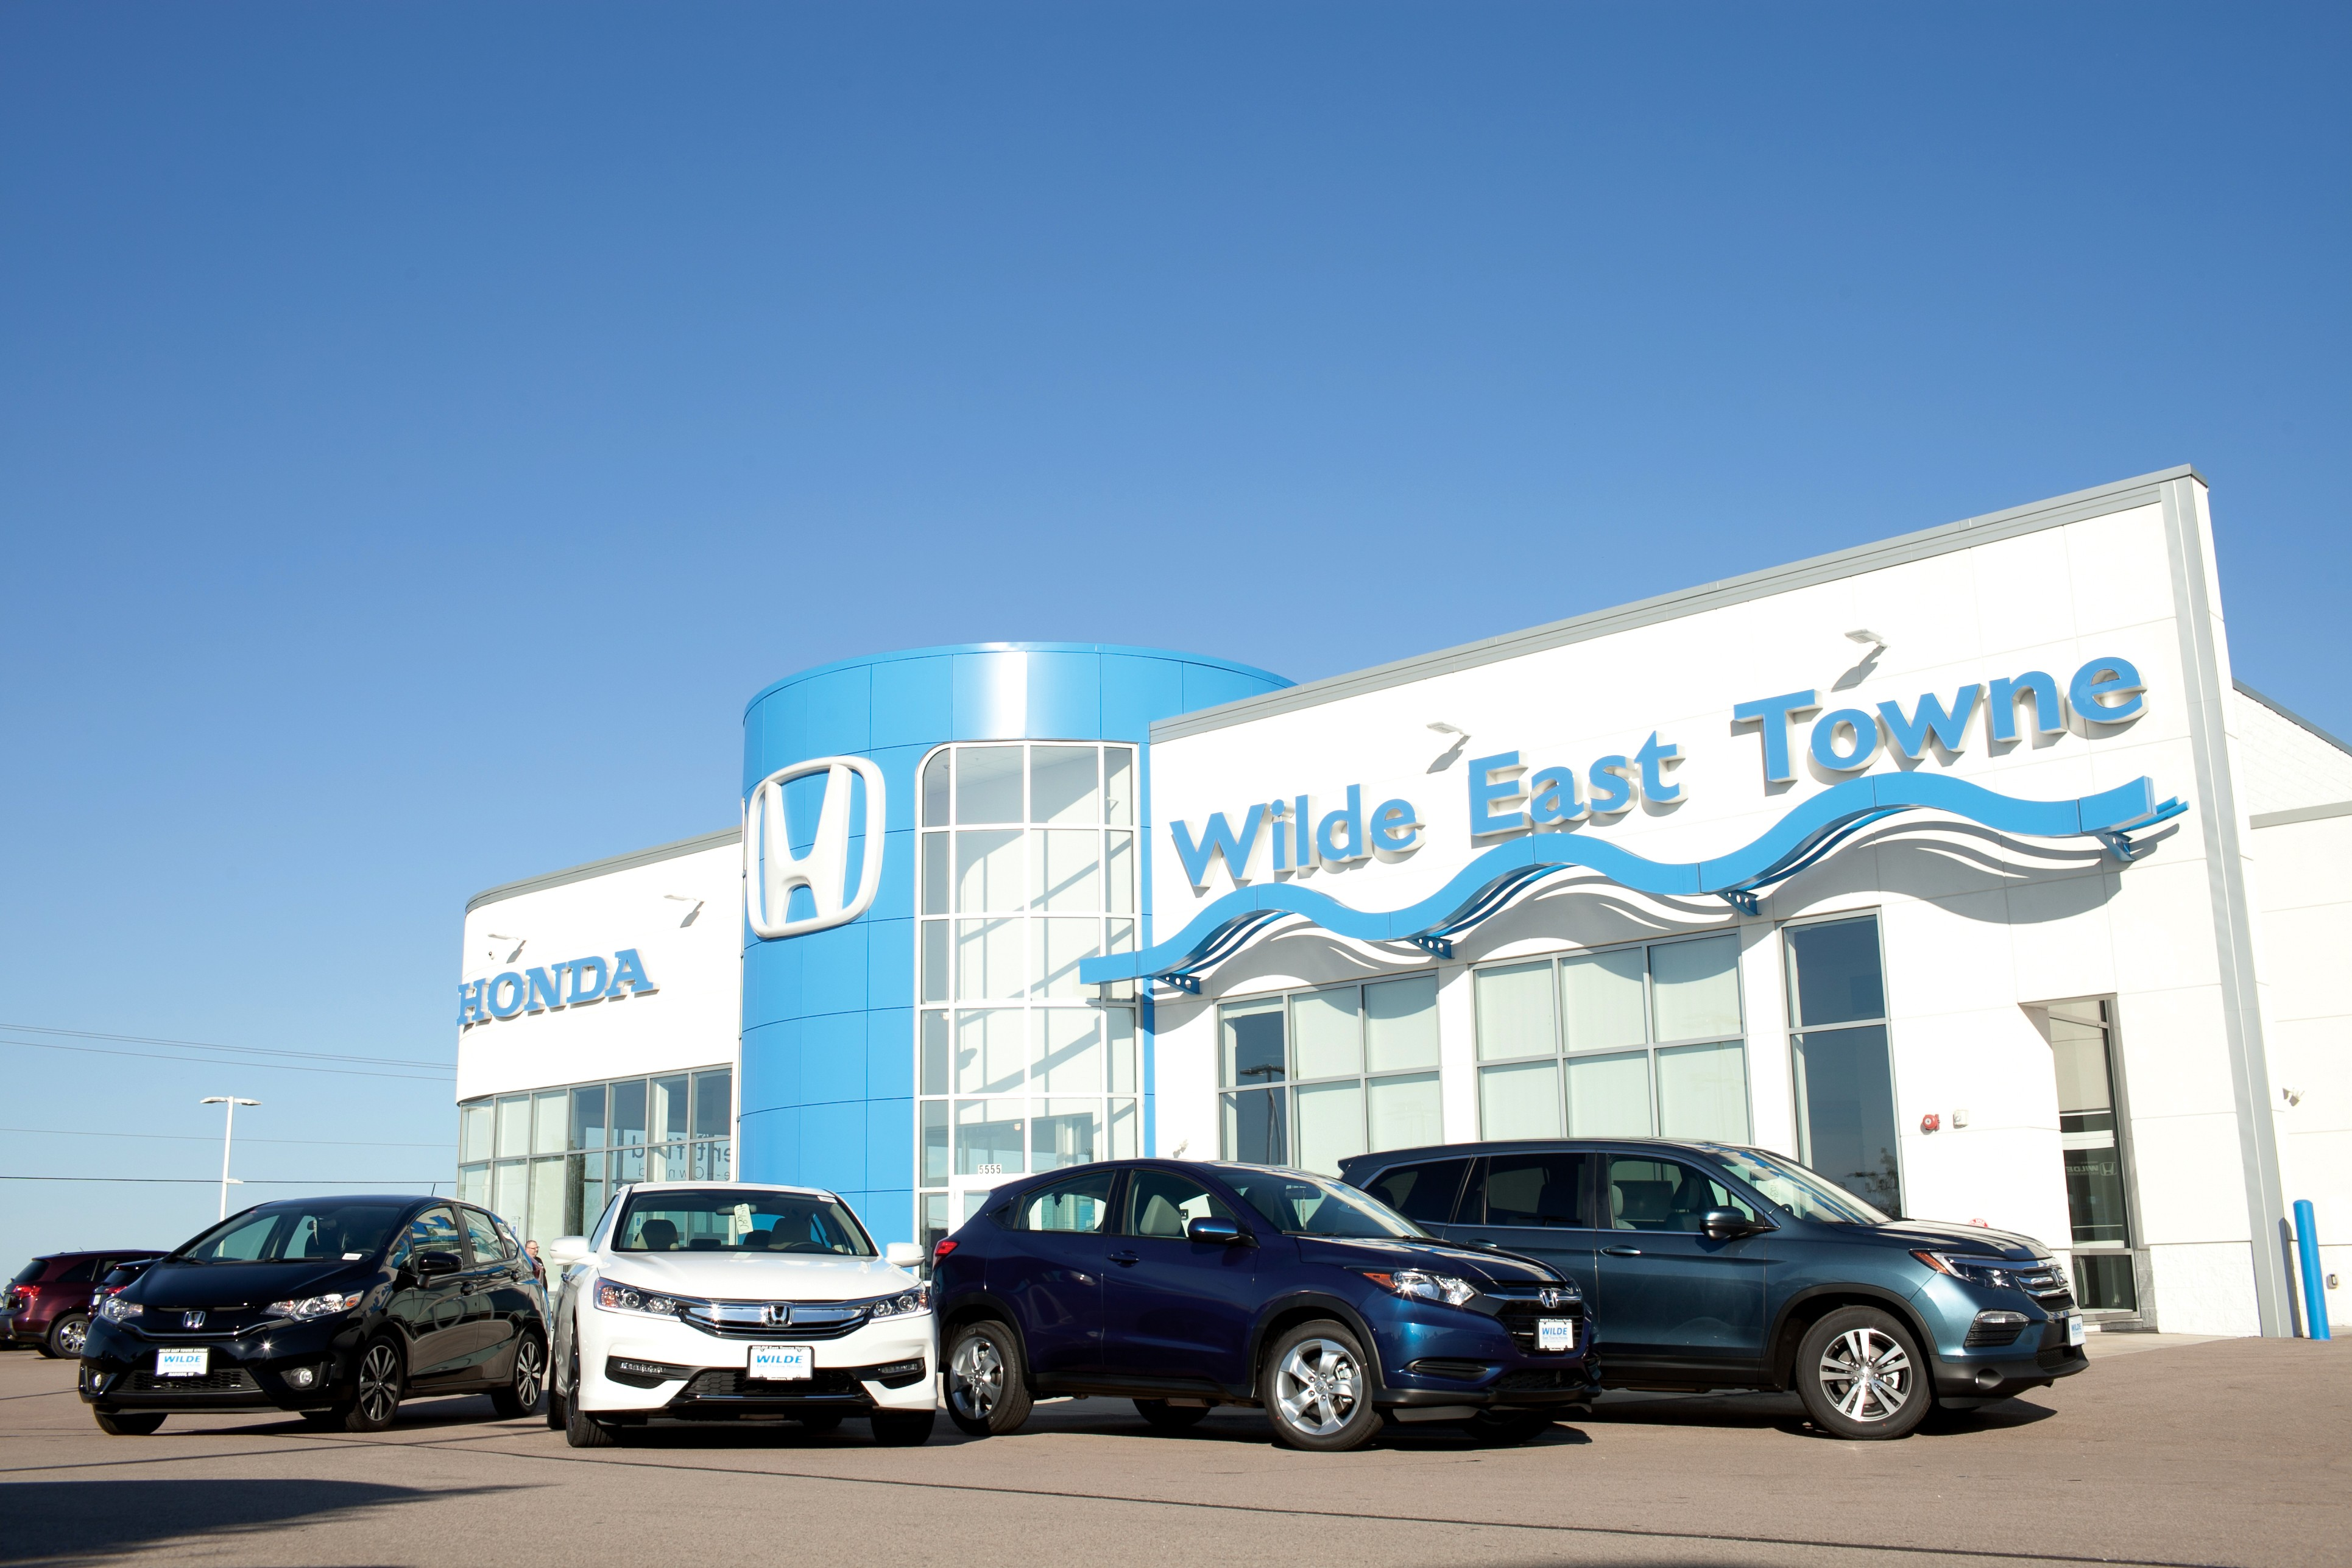 Wilde East Towne Honda Cover Image